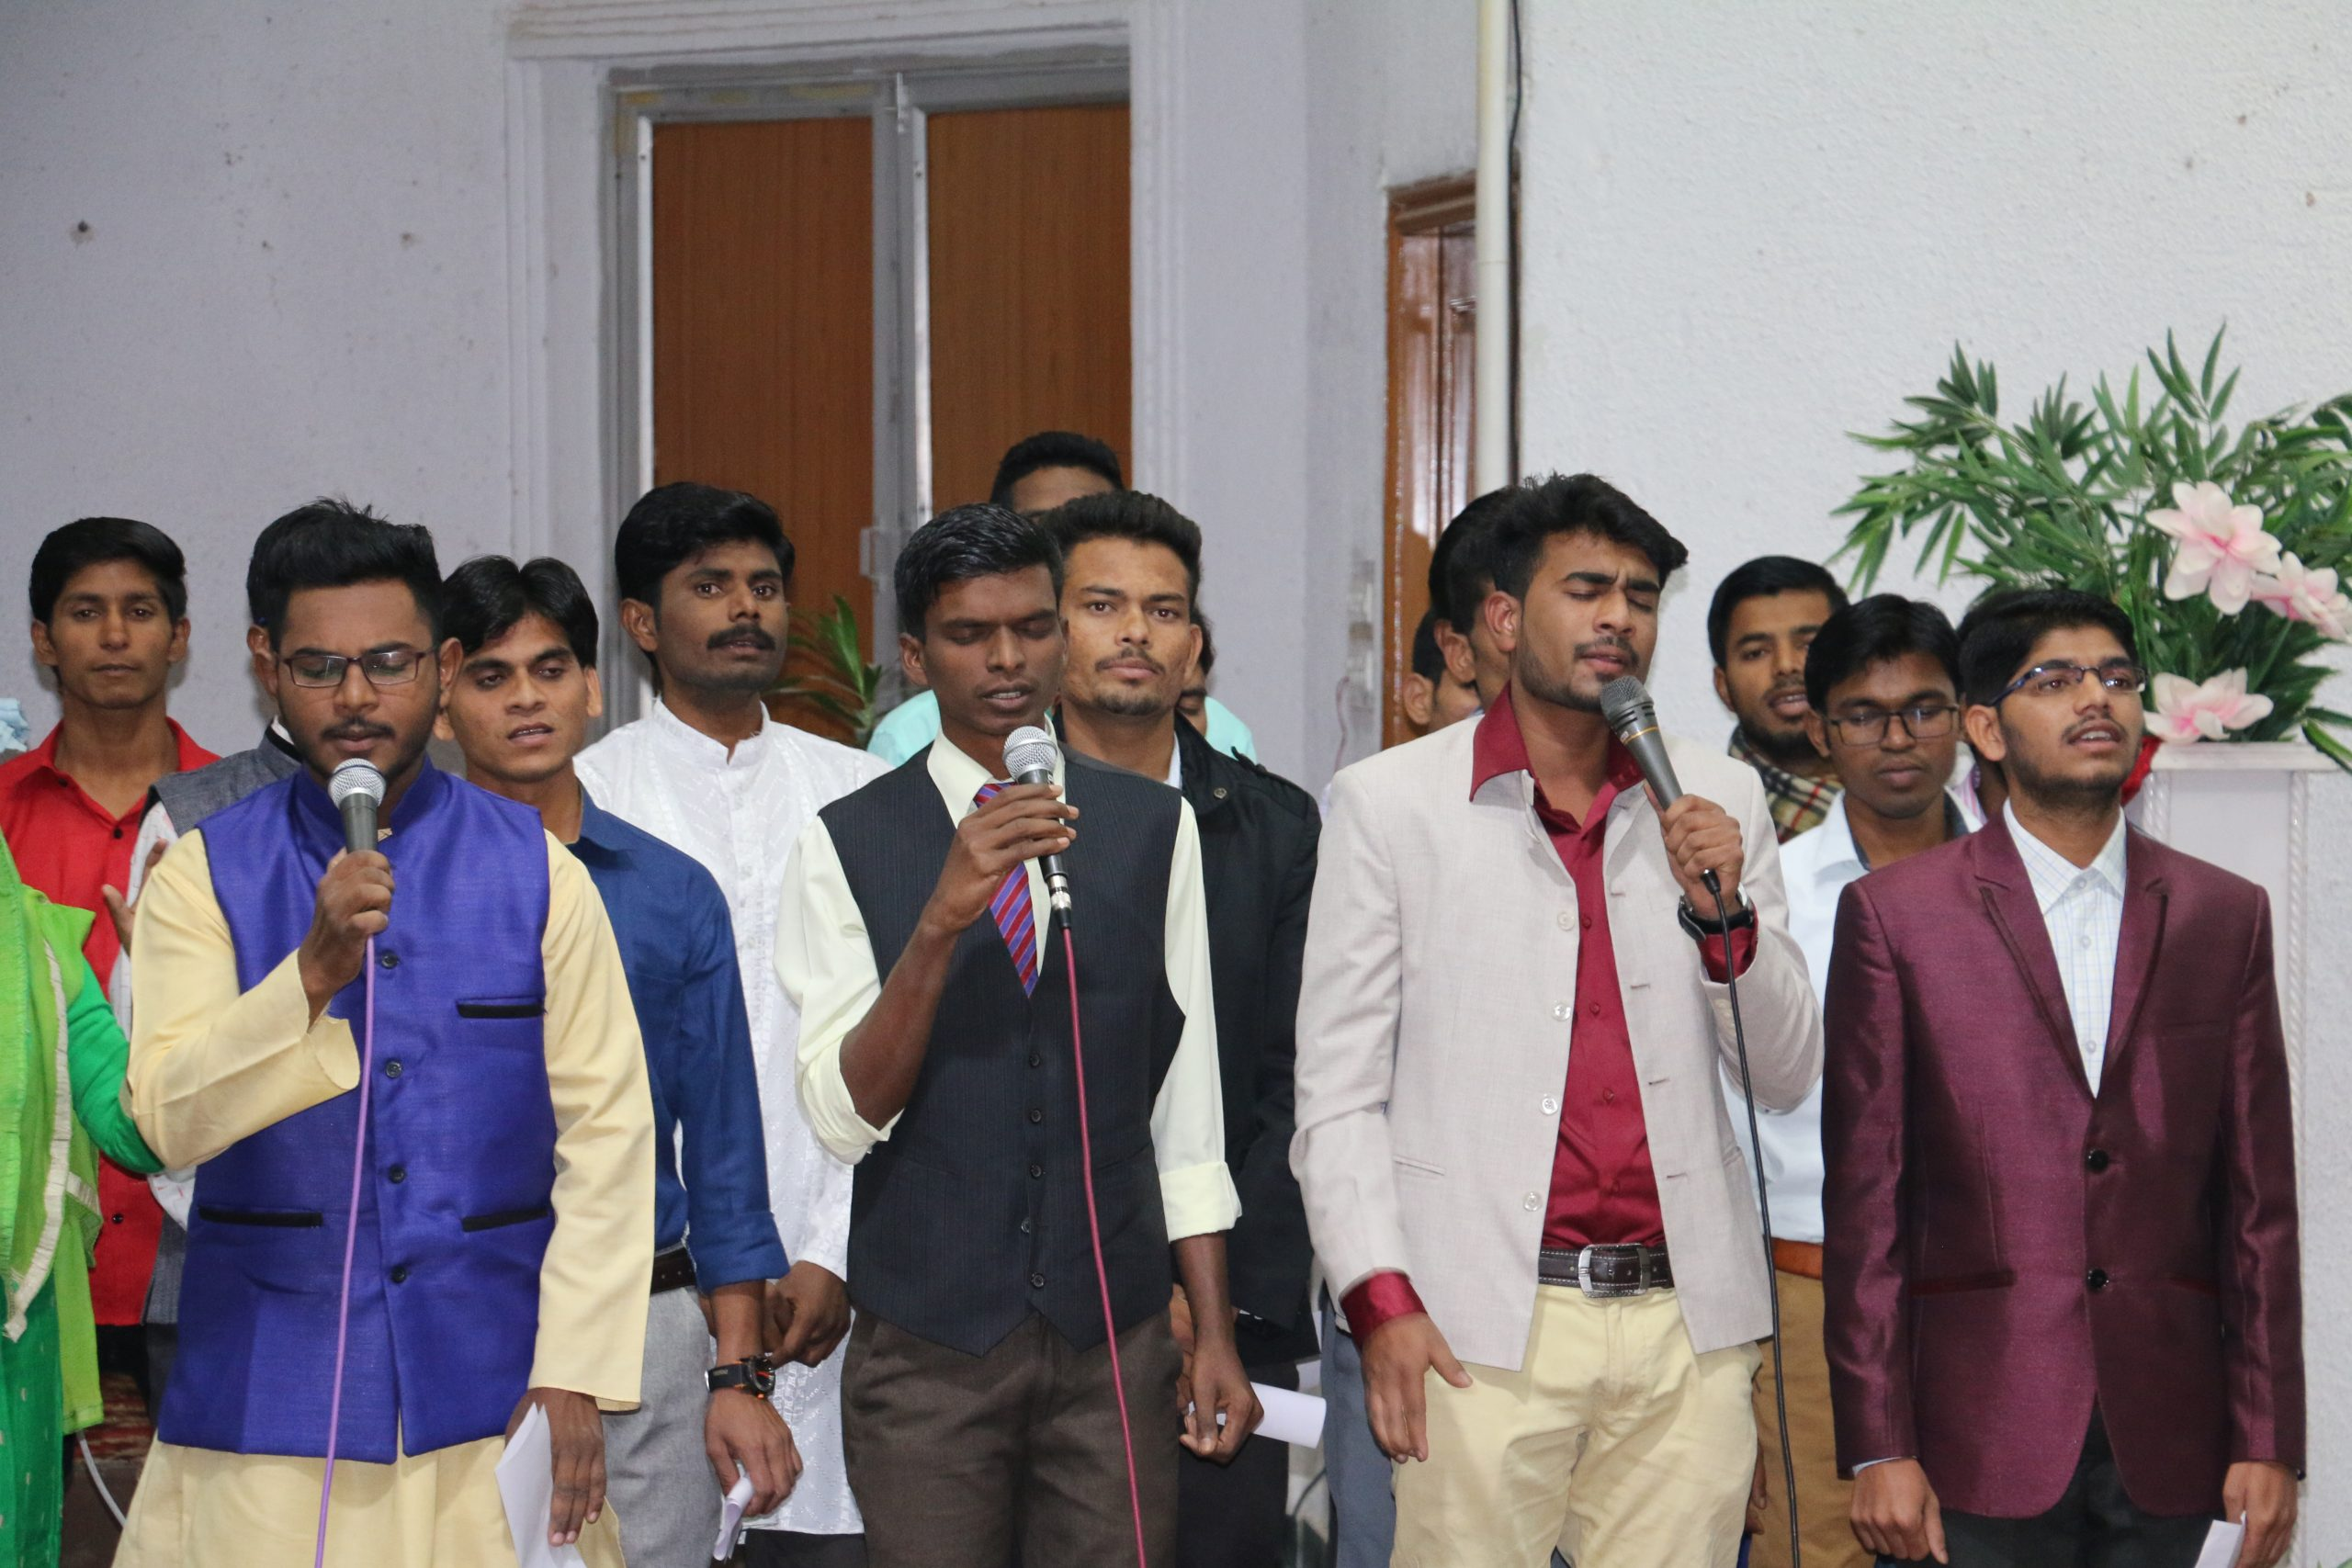 Boys giving a performance